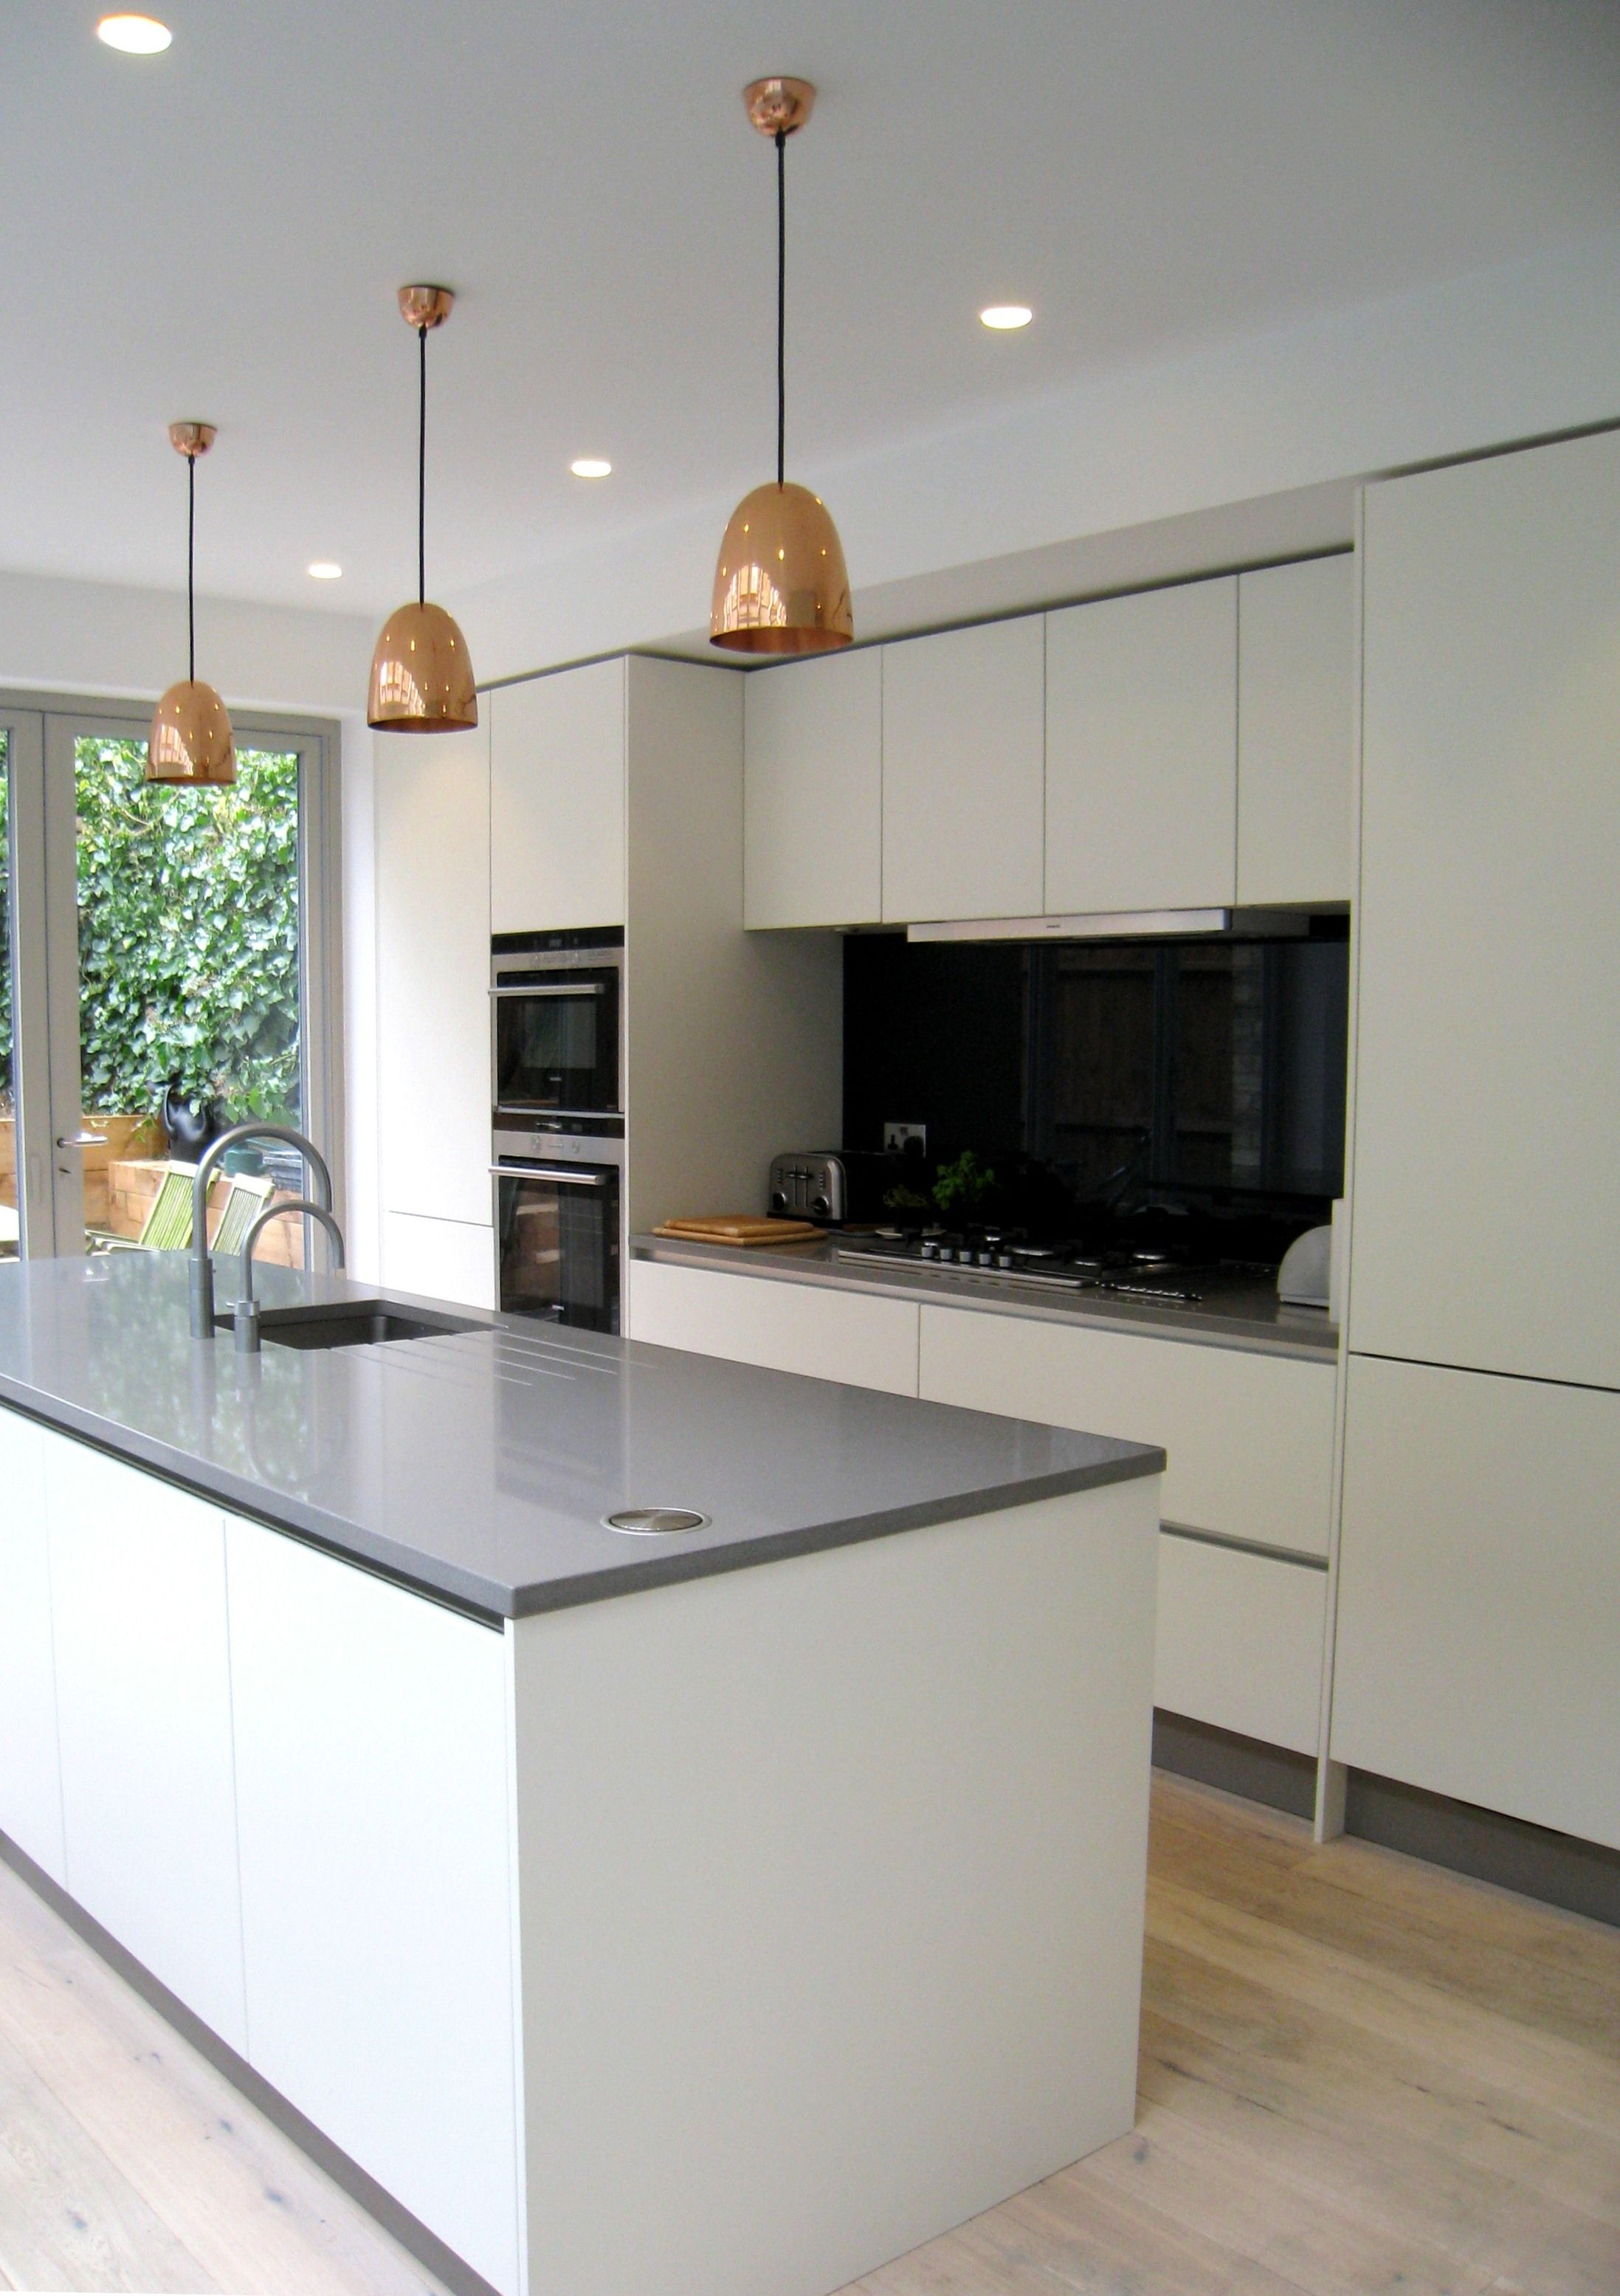 Grey Worktop Simple Yet Stunning White Satin Lacquer, Handless Kitchen With  Vigo Composite Worktop And A Smart Anthracite Glass Splashback, Recently  Fitted ...